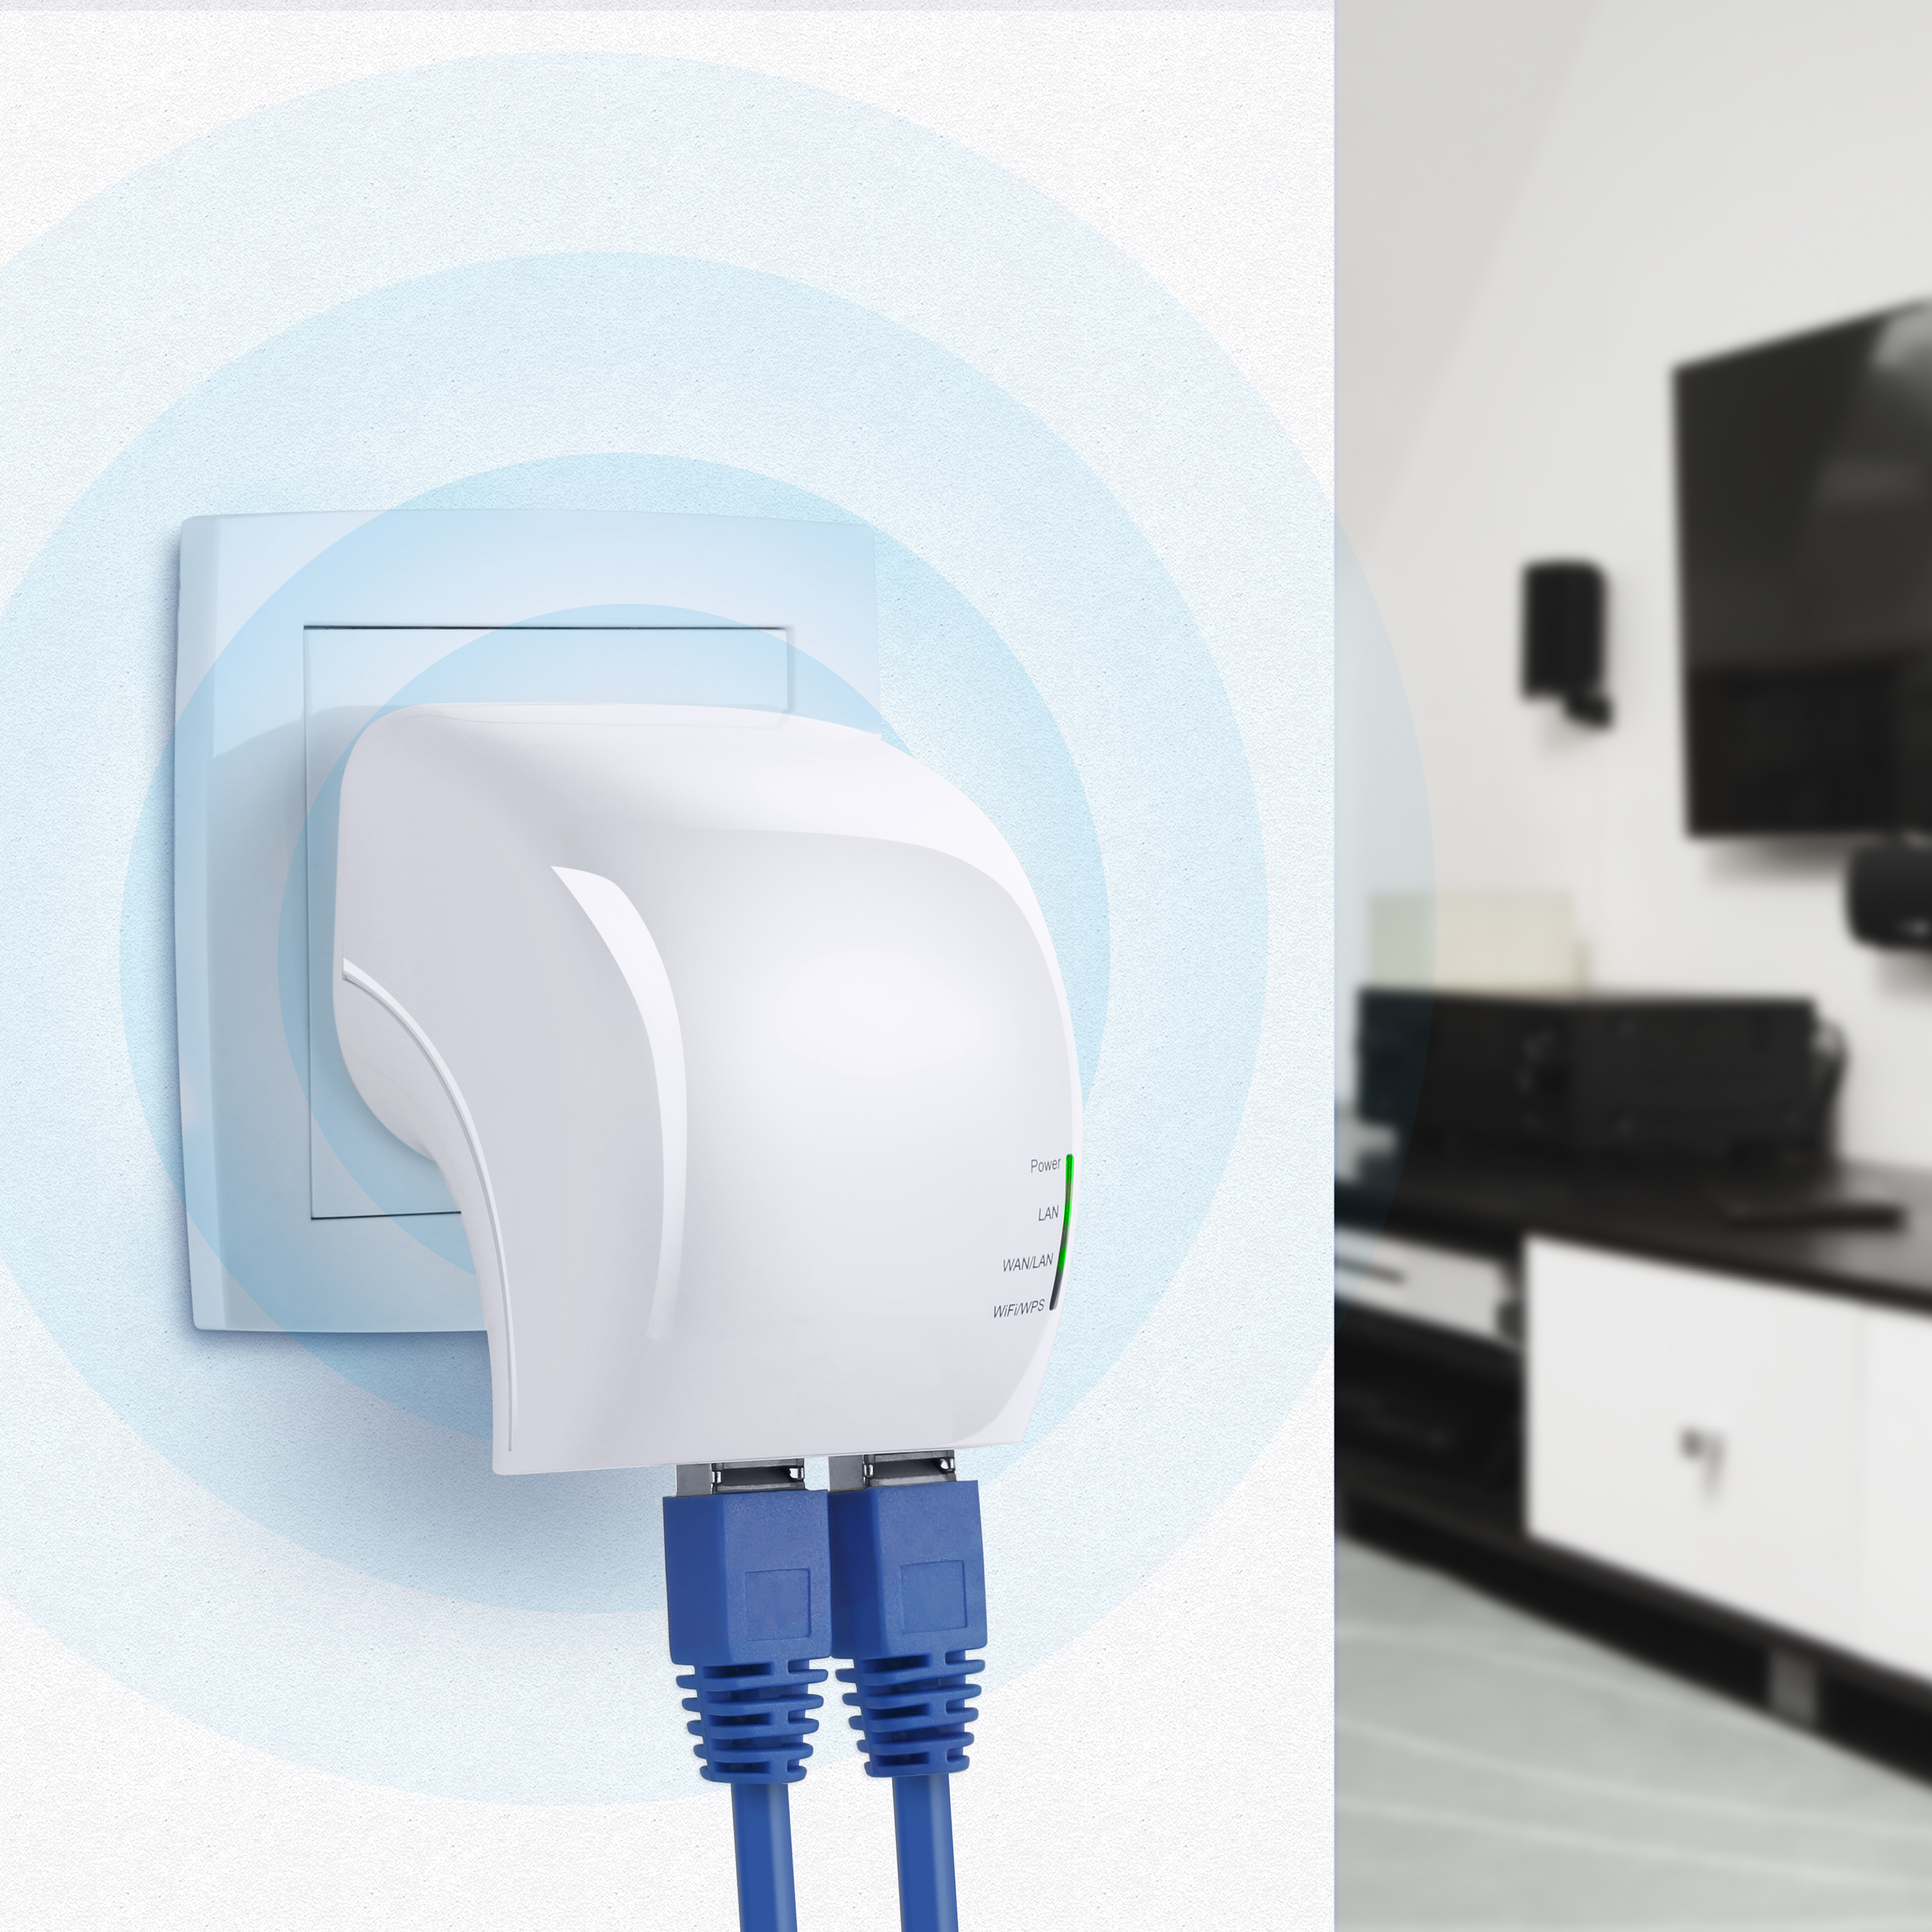 csl wlan wifi dual band ac750 repeater access point router 2 4 5 ghz ebay. Black Bedroom Furniture Sets. Home Design Ideas